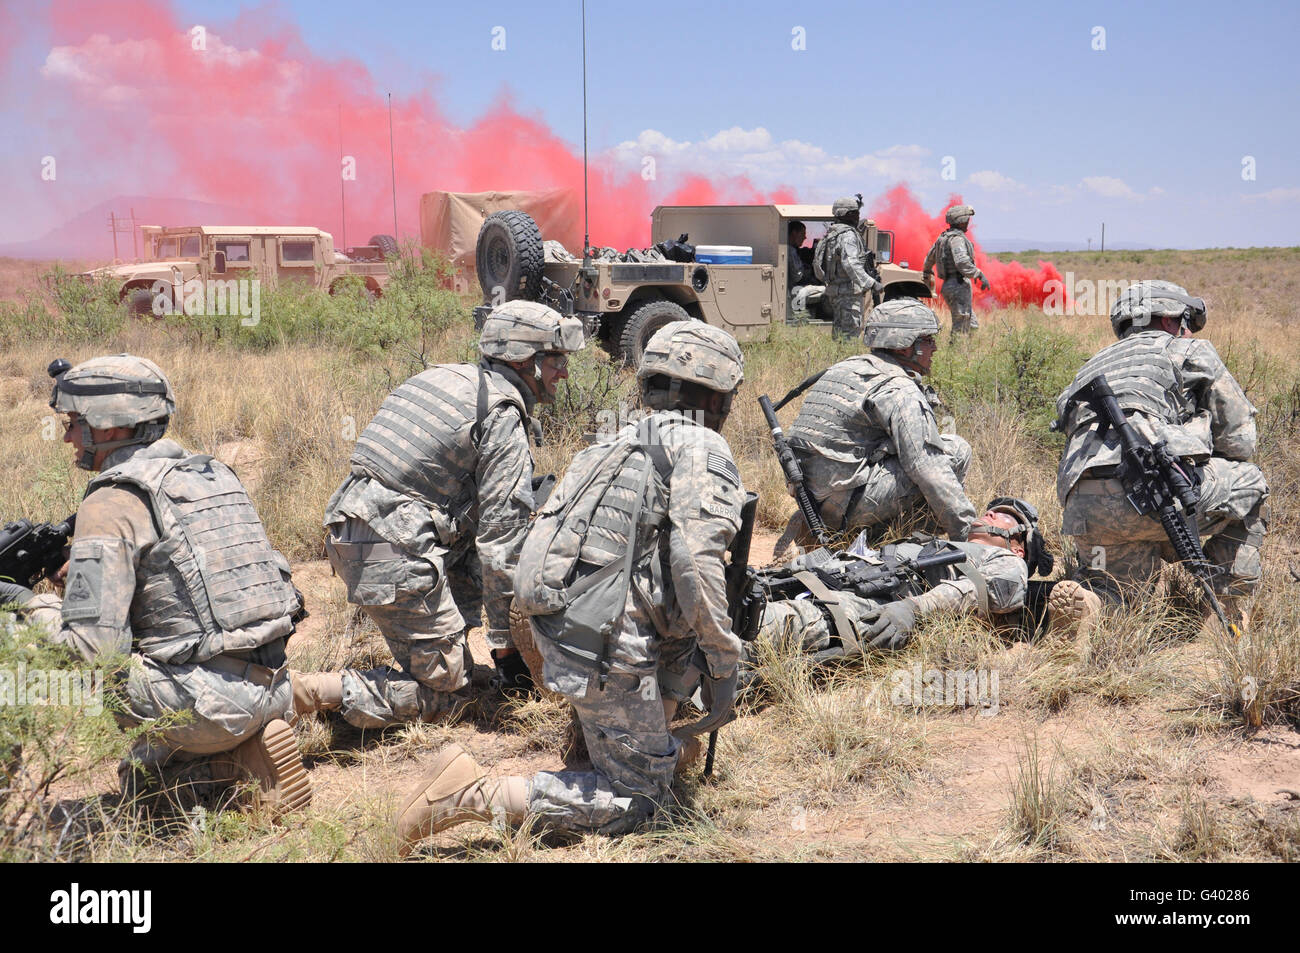 Soldiers prepare to transport a wounded soldier during a medical evacuataion. Stock Photo